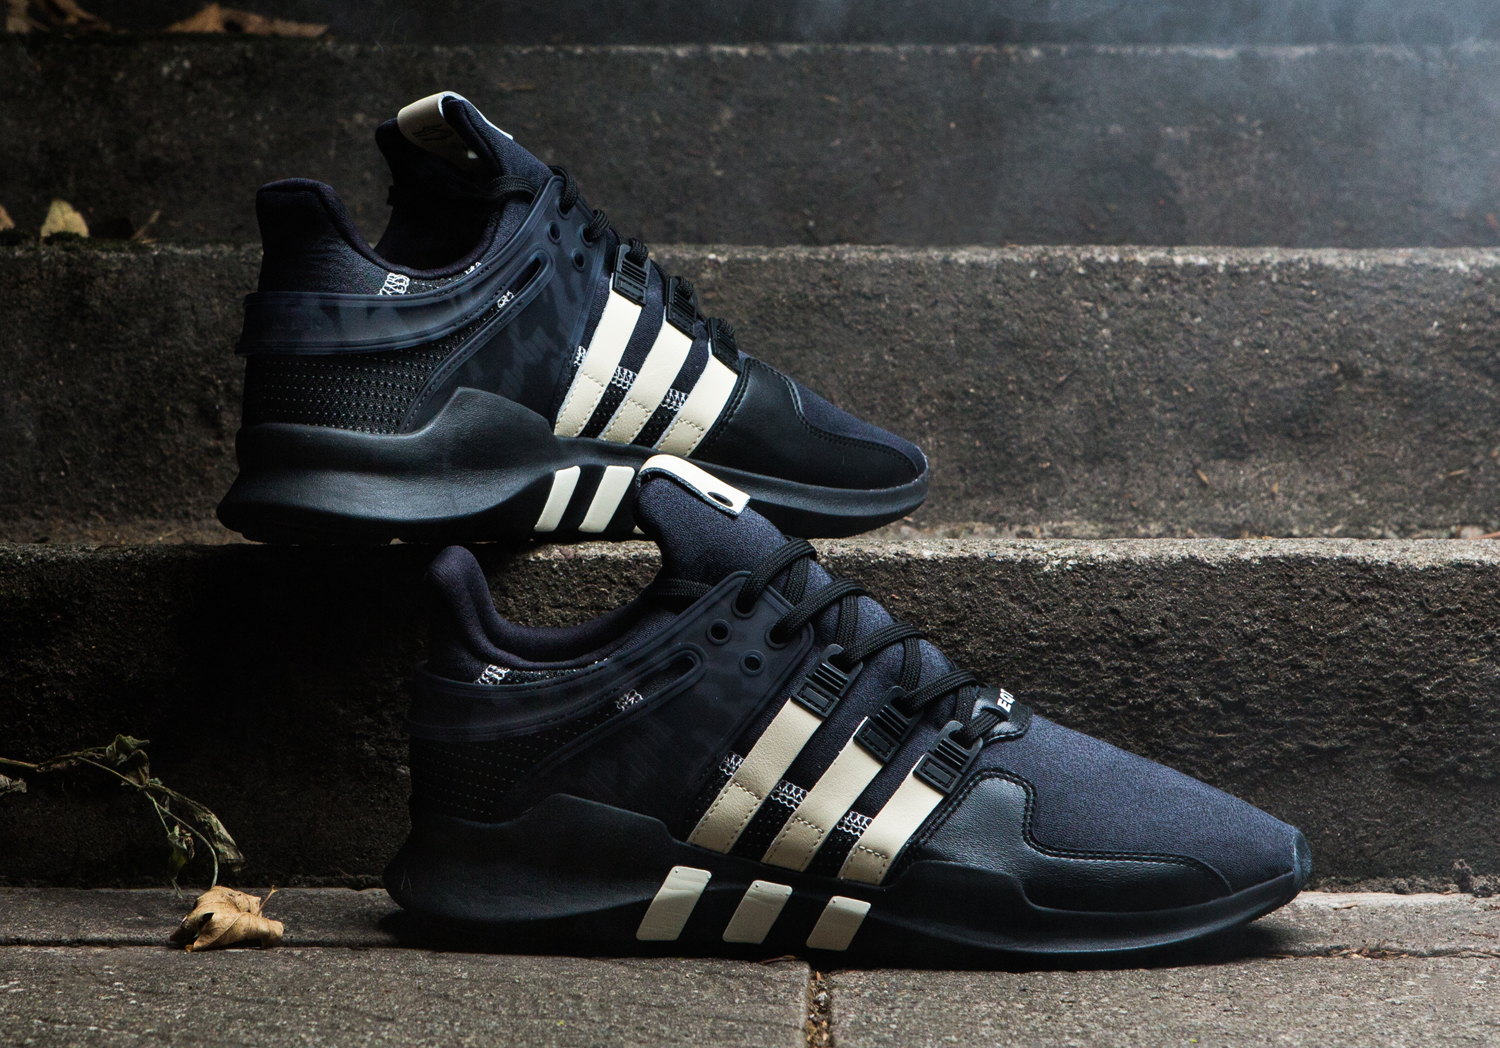 finest selection 1e3ea 35129 UNDFTD Adidas Consortium EQT Support ADV | Sole Collector